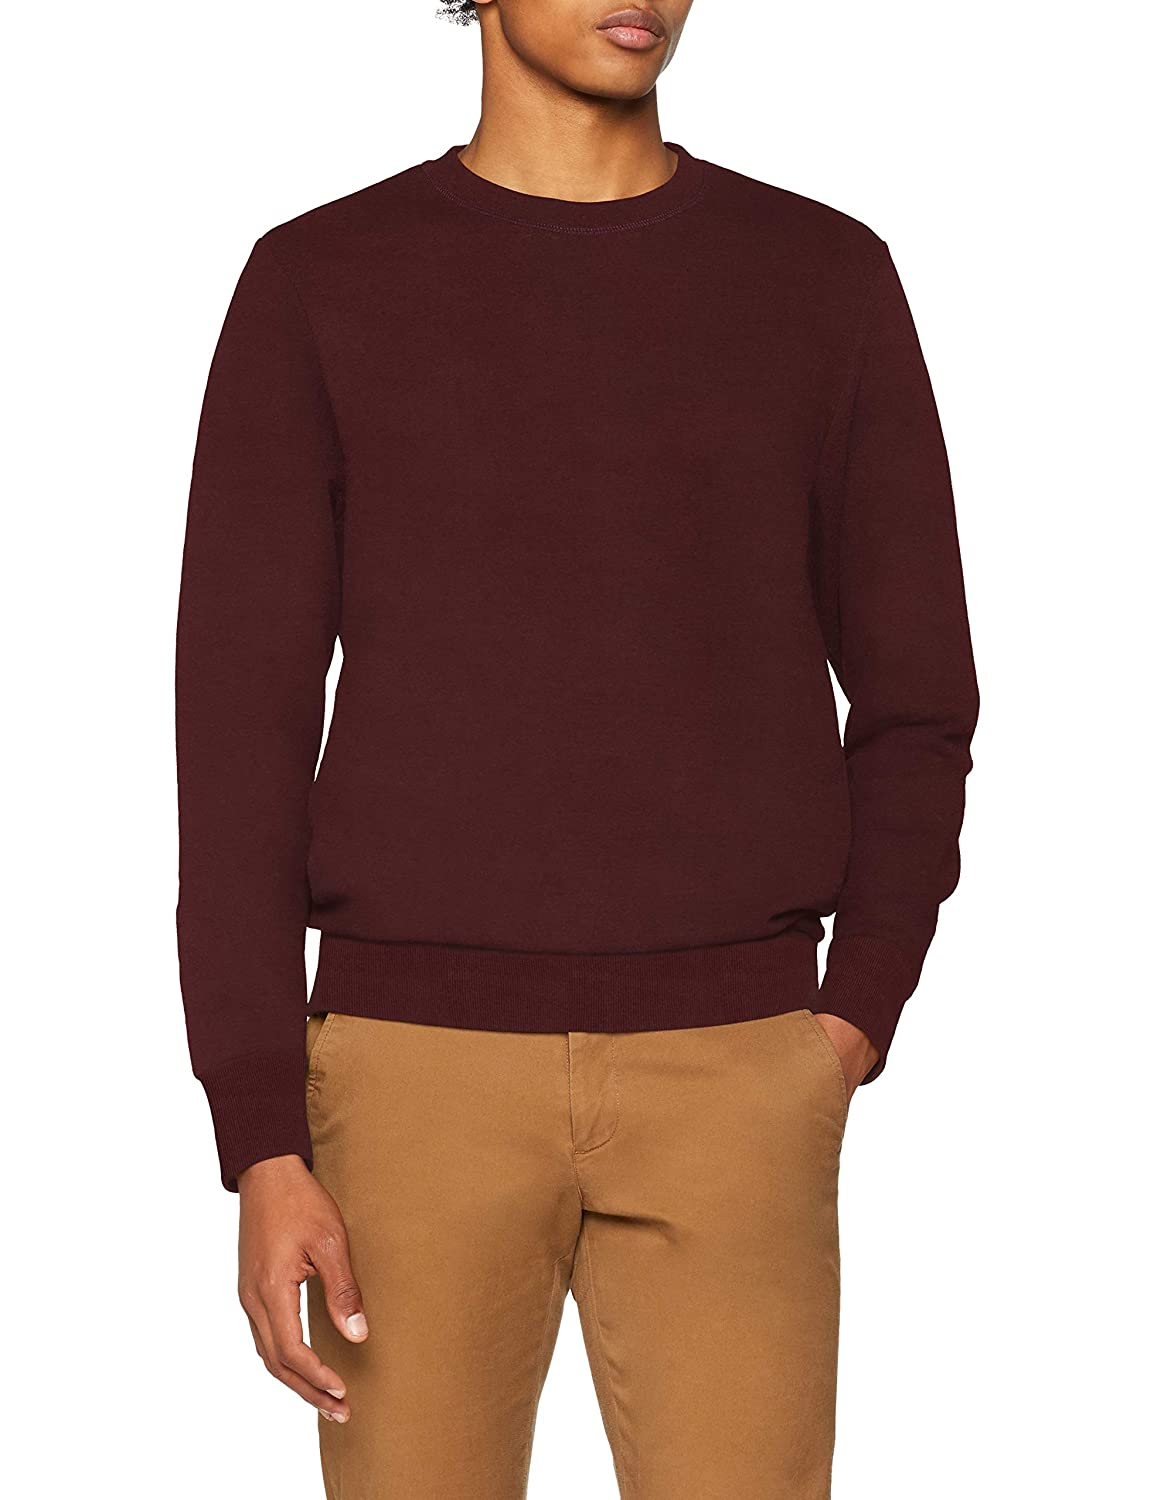 JACK & JONES Jjeholmen Sweat Crew Neck Noos, Felpa Uomo 12136886